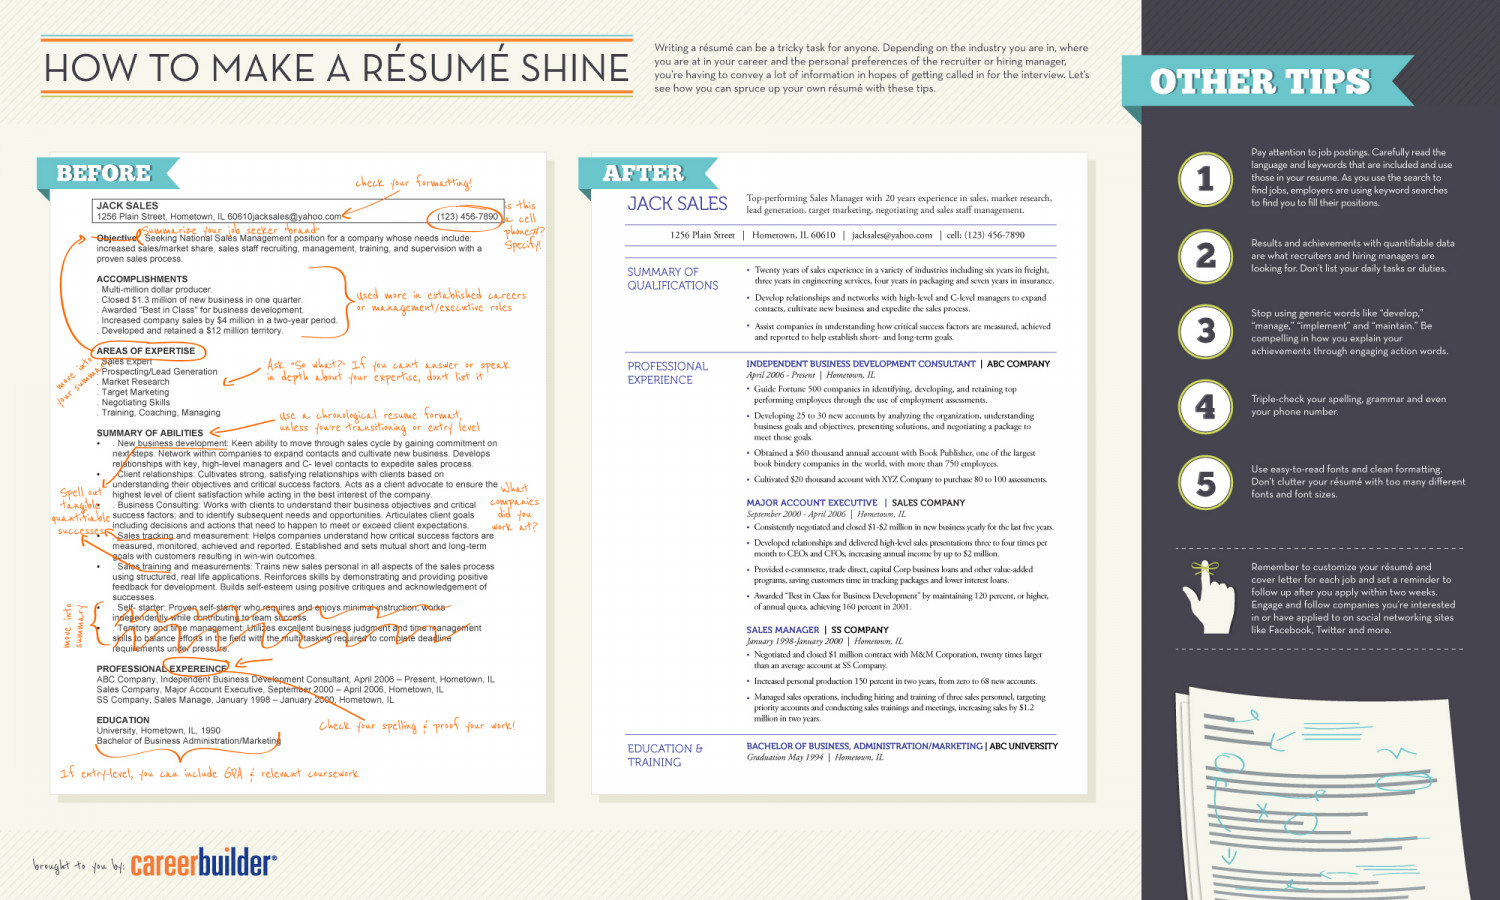 How To Make A Résumé Shine Infographic  How To Make A Reume